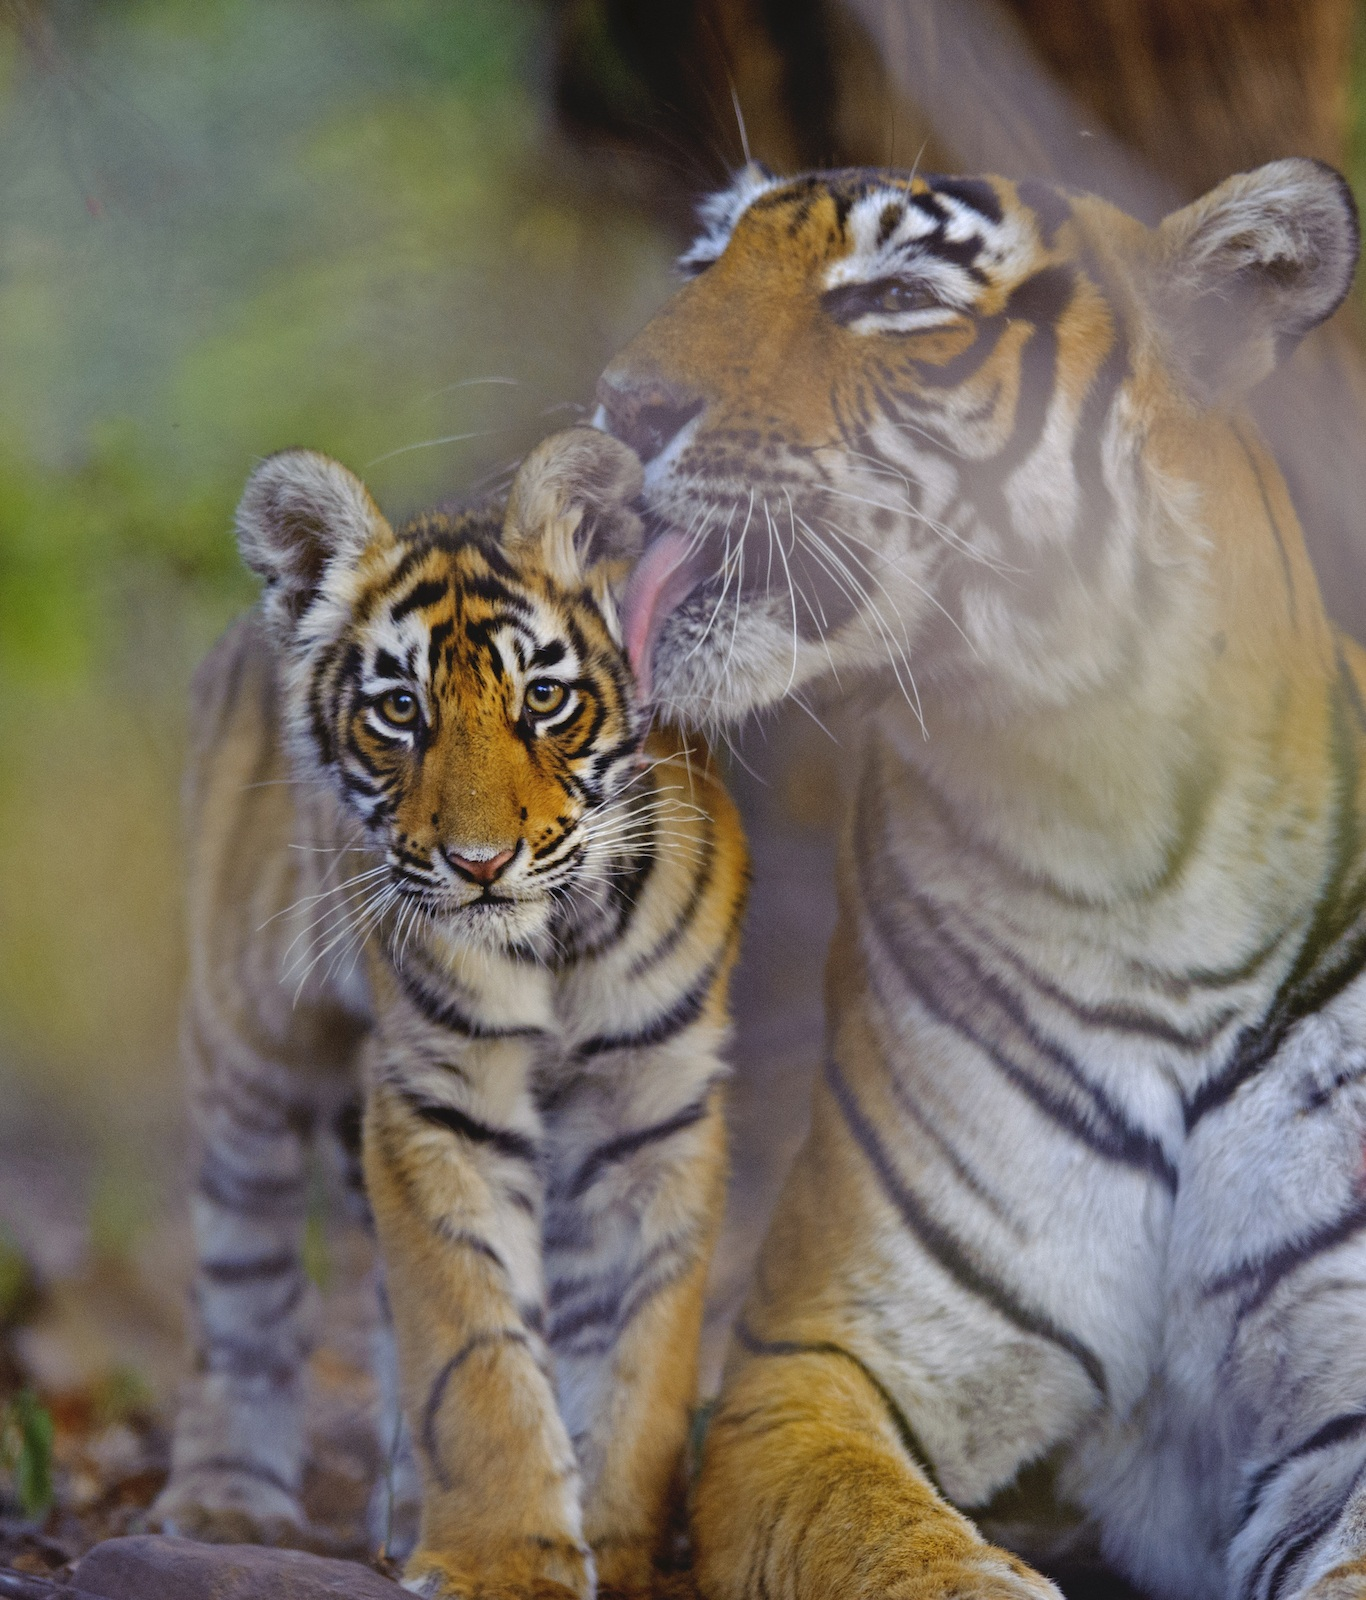 Tigers are solitary animals, but tiger mothers care, protect, look after and feed their cubs until they are nearly two. Observations in Ranthambore over the years have contributed significantly to our understanding of the tiger's social structures and behaviour. Photo: Dhritiman Mukherjee